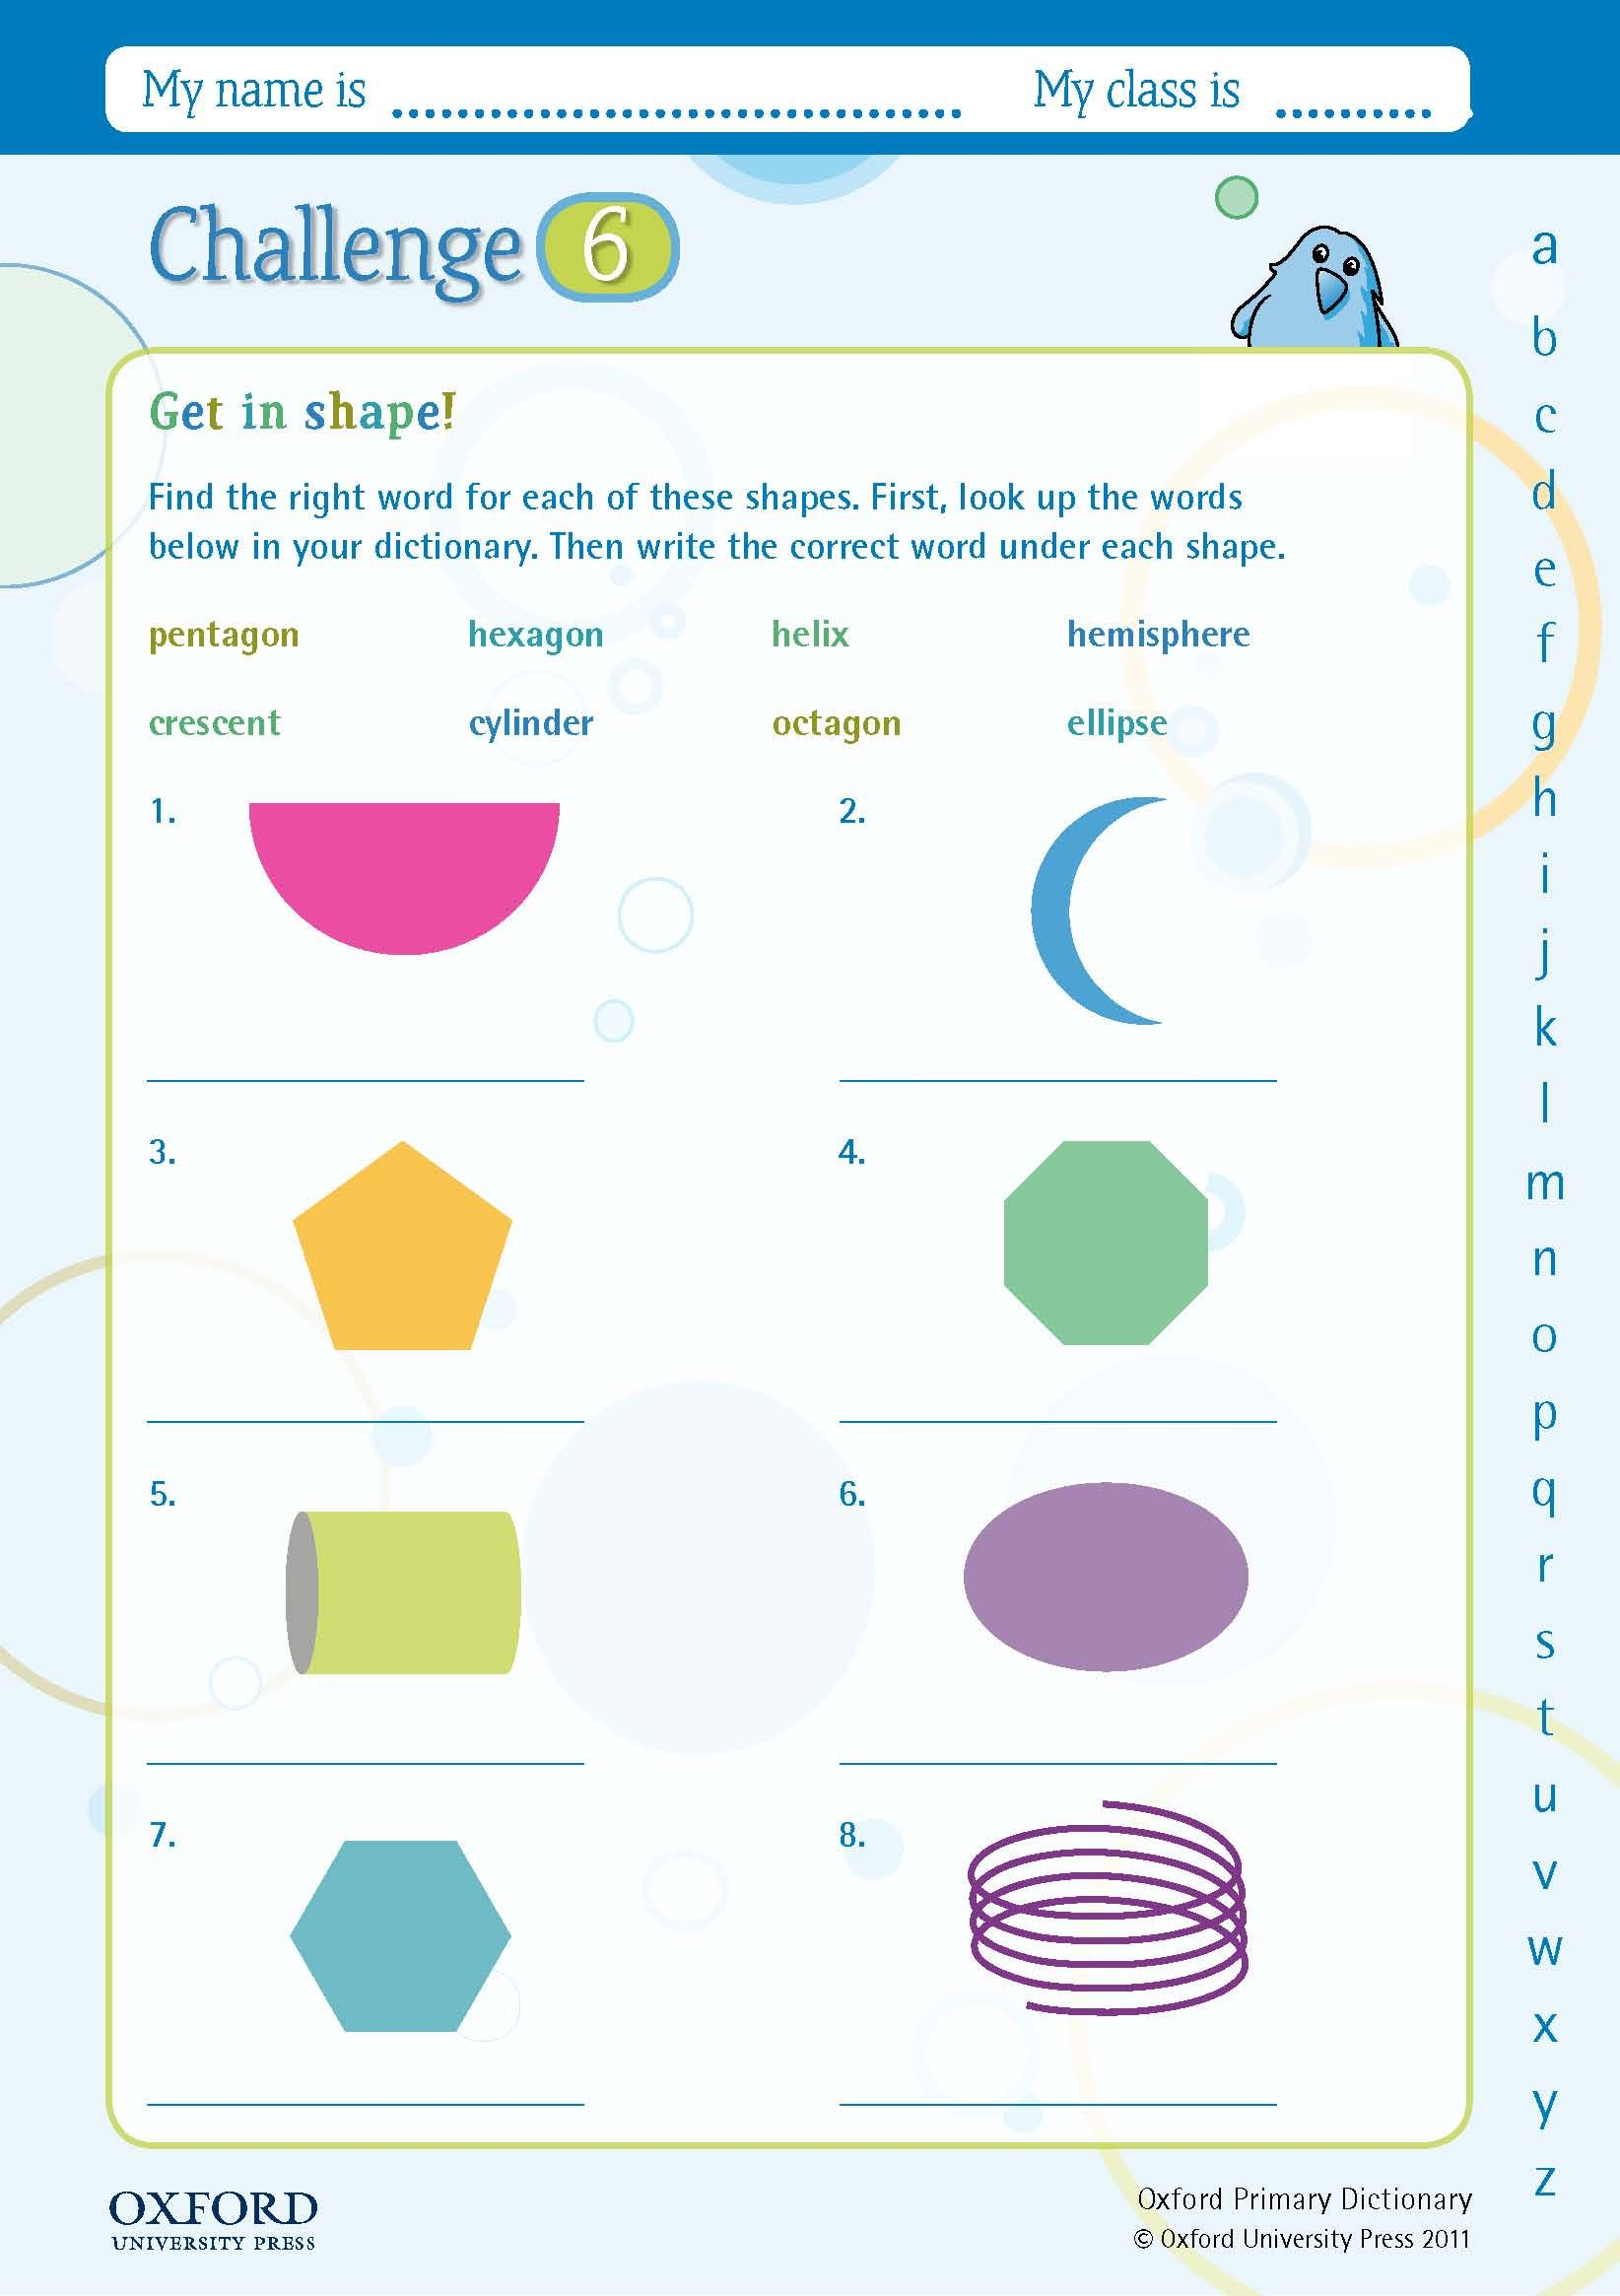 Download Your Free Oxford Primary Dictionary Challenge Worksheet Find The Right Word For Each Of These S Kindergarten Skills Classroom Themes Learning Letters [ 2330 x 1644 Pixel ]